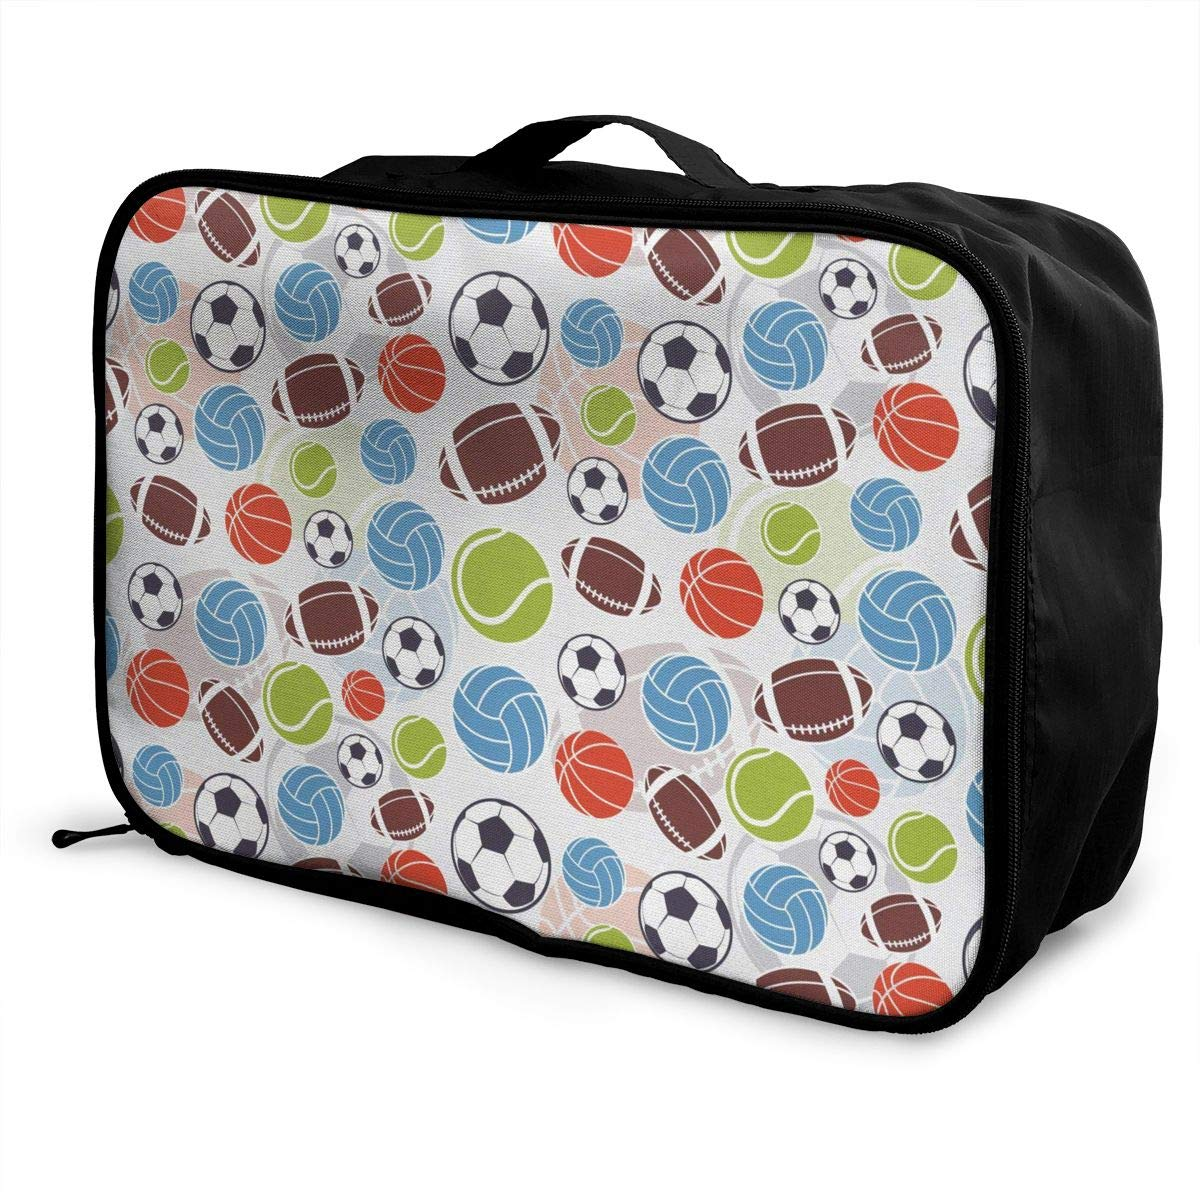 ADGAI Sports Balls Pattern Abstract Basketball Football Canvas Travel Weekender Bag,Fashion Custom Lightweight Large Capacity Portable Luggage Bag,Suitcase Trolley Bag